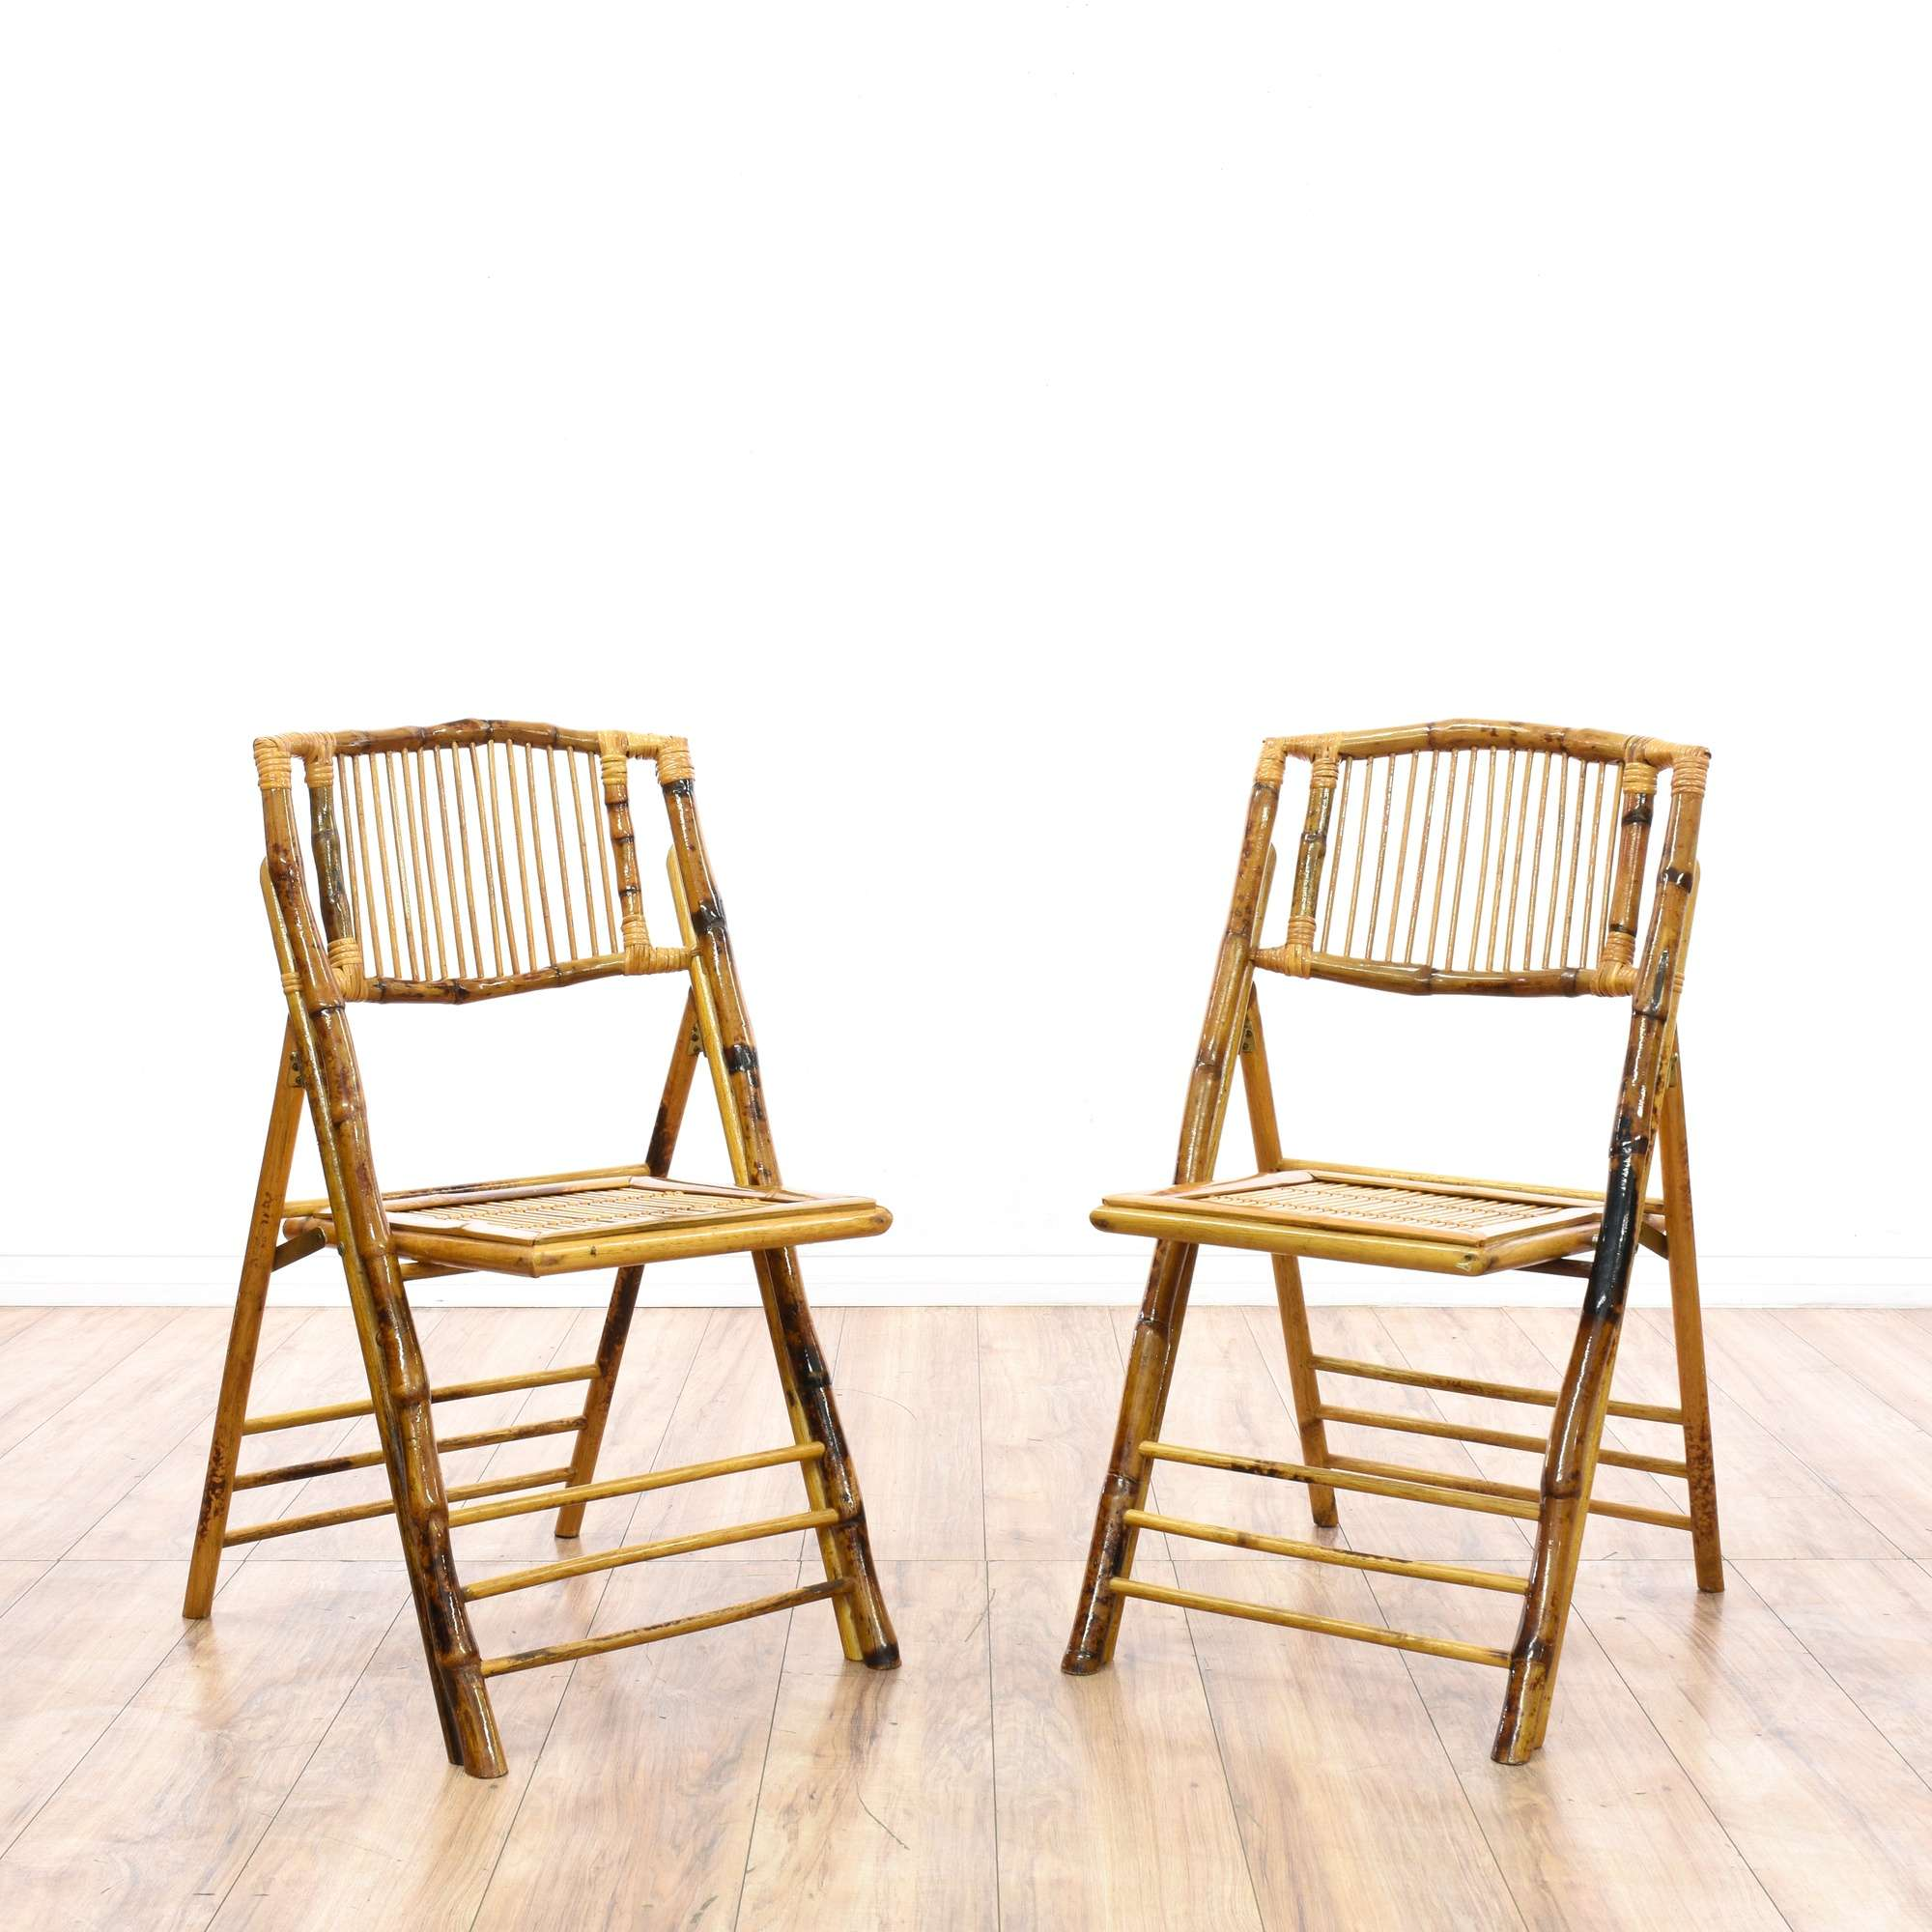 Pleasant Pair Of Bohemian Bamboo Folding Chairs Loveseat Vintage Caraccident5 Cool Chair Designs And Ideas Caraccident5Info